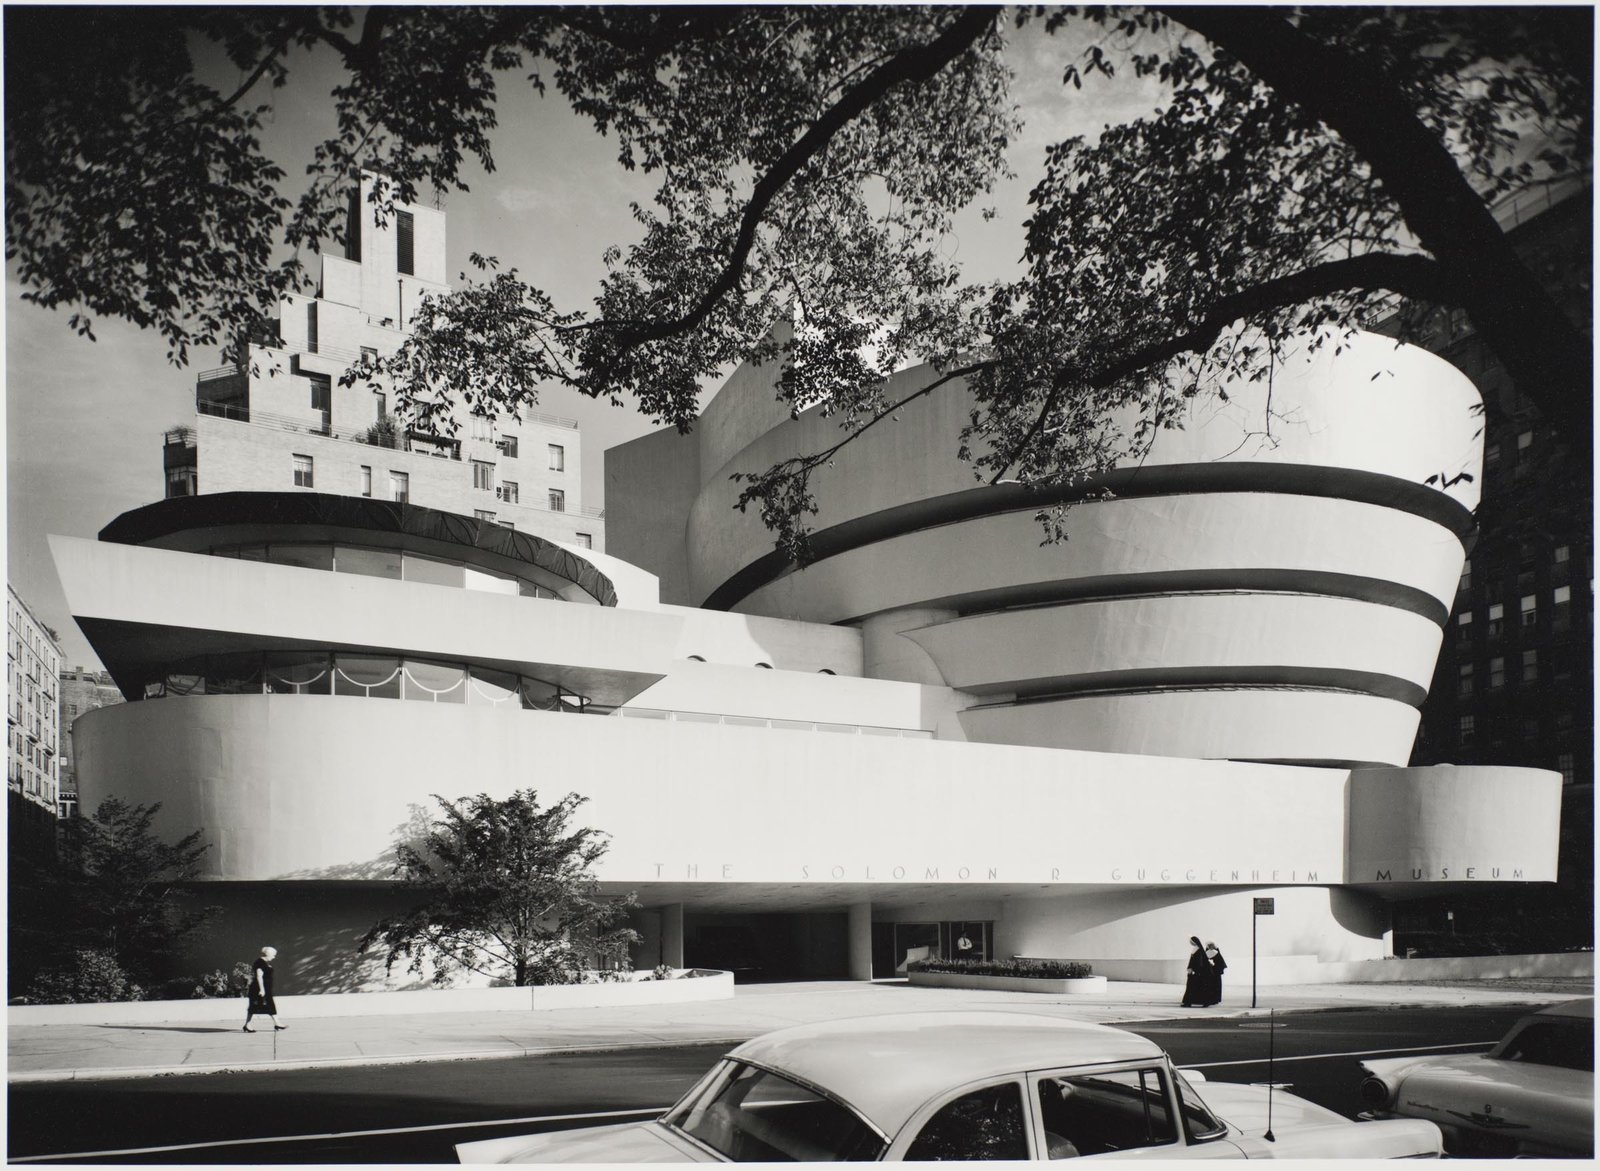 Exterior Solomon R. Guggenheim Museum, designed by Frank Lloyd Wright, photographed in 1959. Gelatin silver print. Image courtesy of the Carnegie Museum of Art, copyright Ezra Stoller/Esto, Yossi Milo Gallery.  Photo 4 of 10 in 10 Frank Lloyd Wright Buildings We Love from Modernism Through the Viewfinder: The Photography of Ezra Stoller